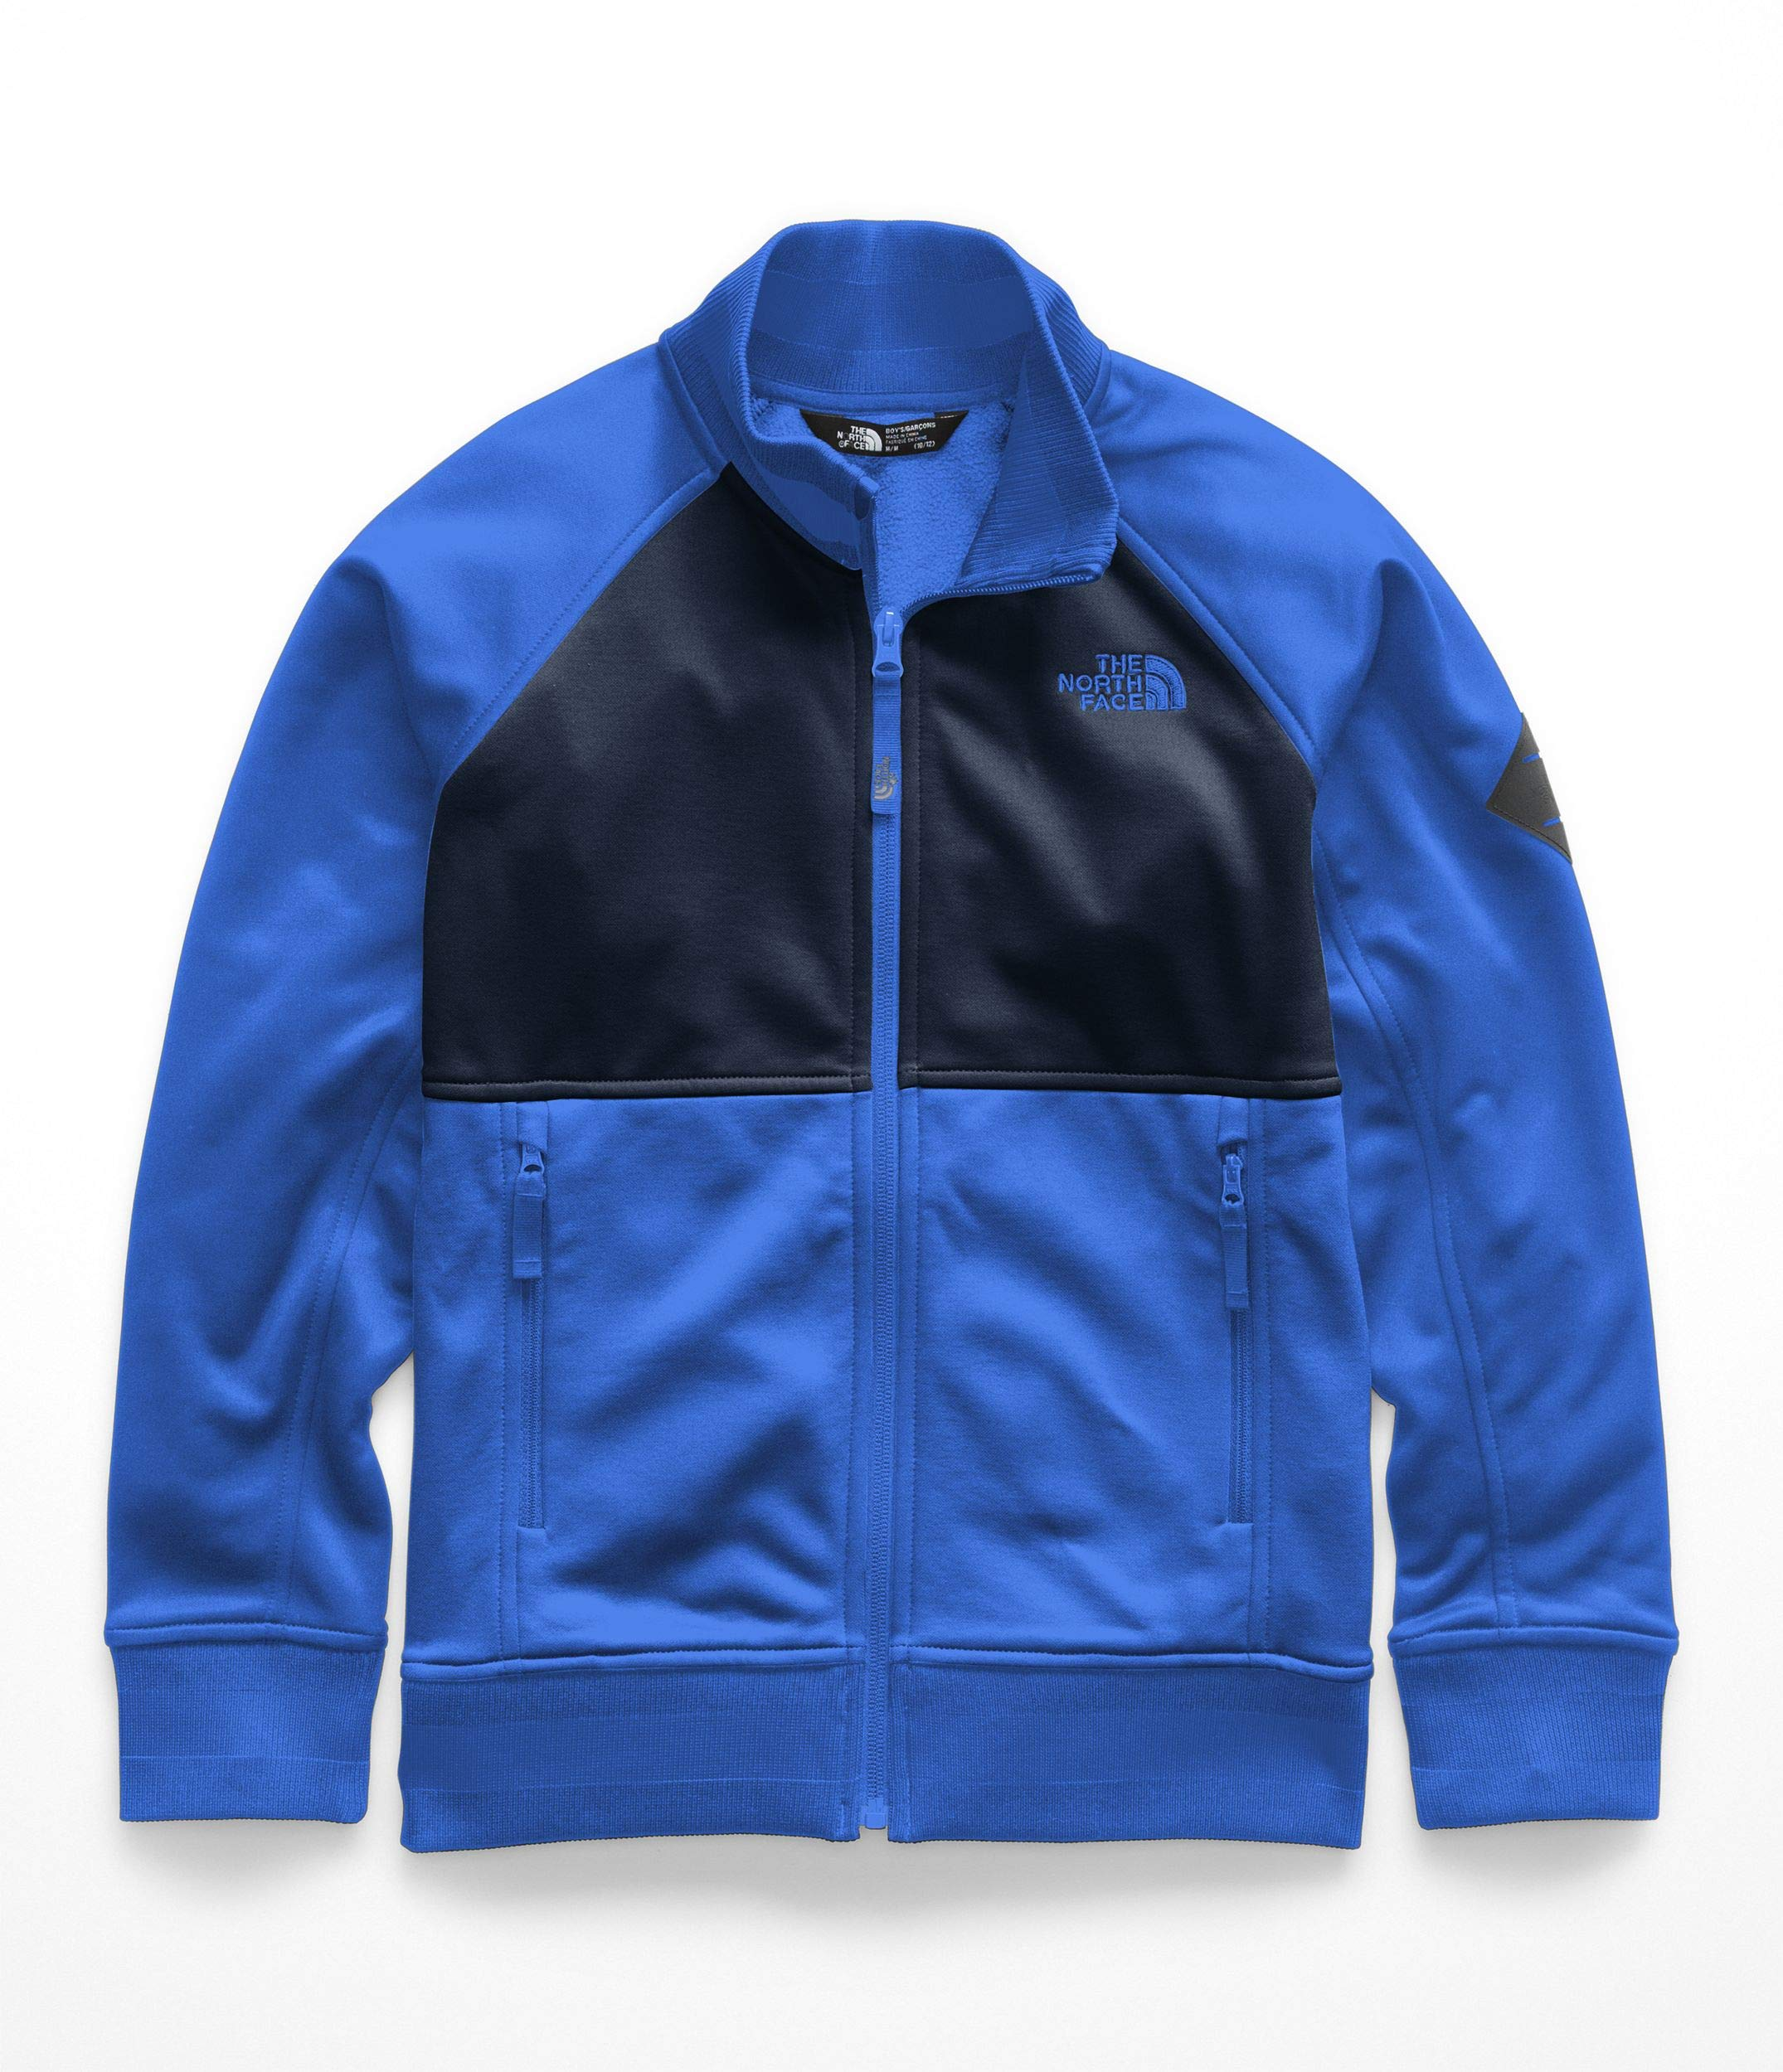 The North Face Boys Takeback Track Jacket - Turkish Sea - M